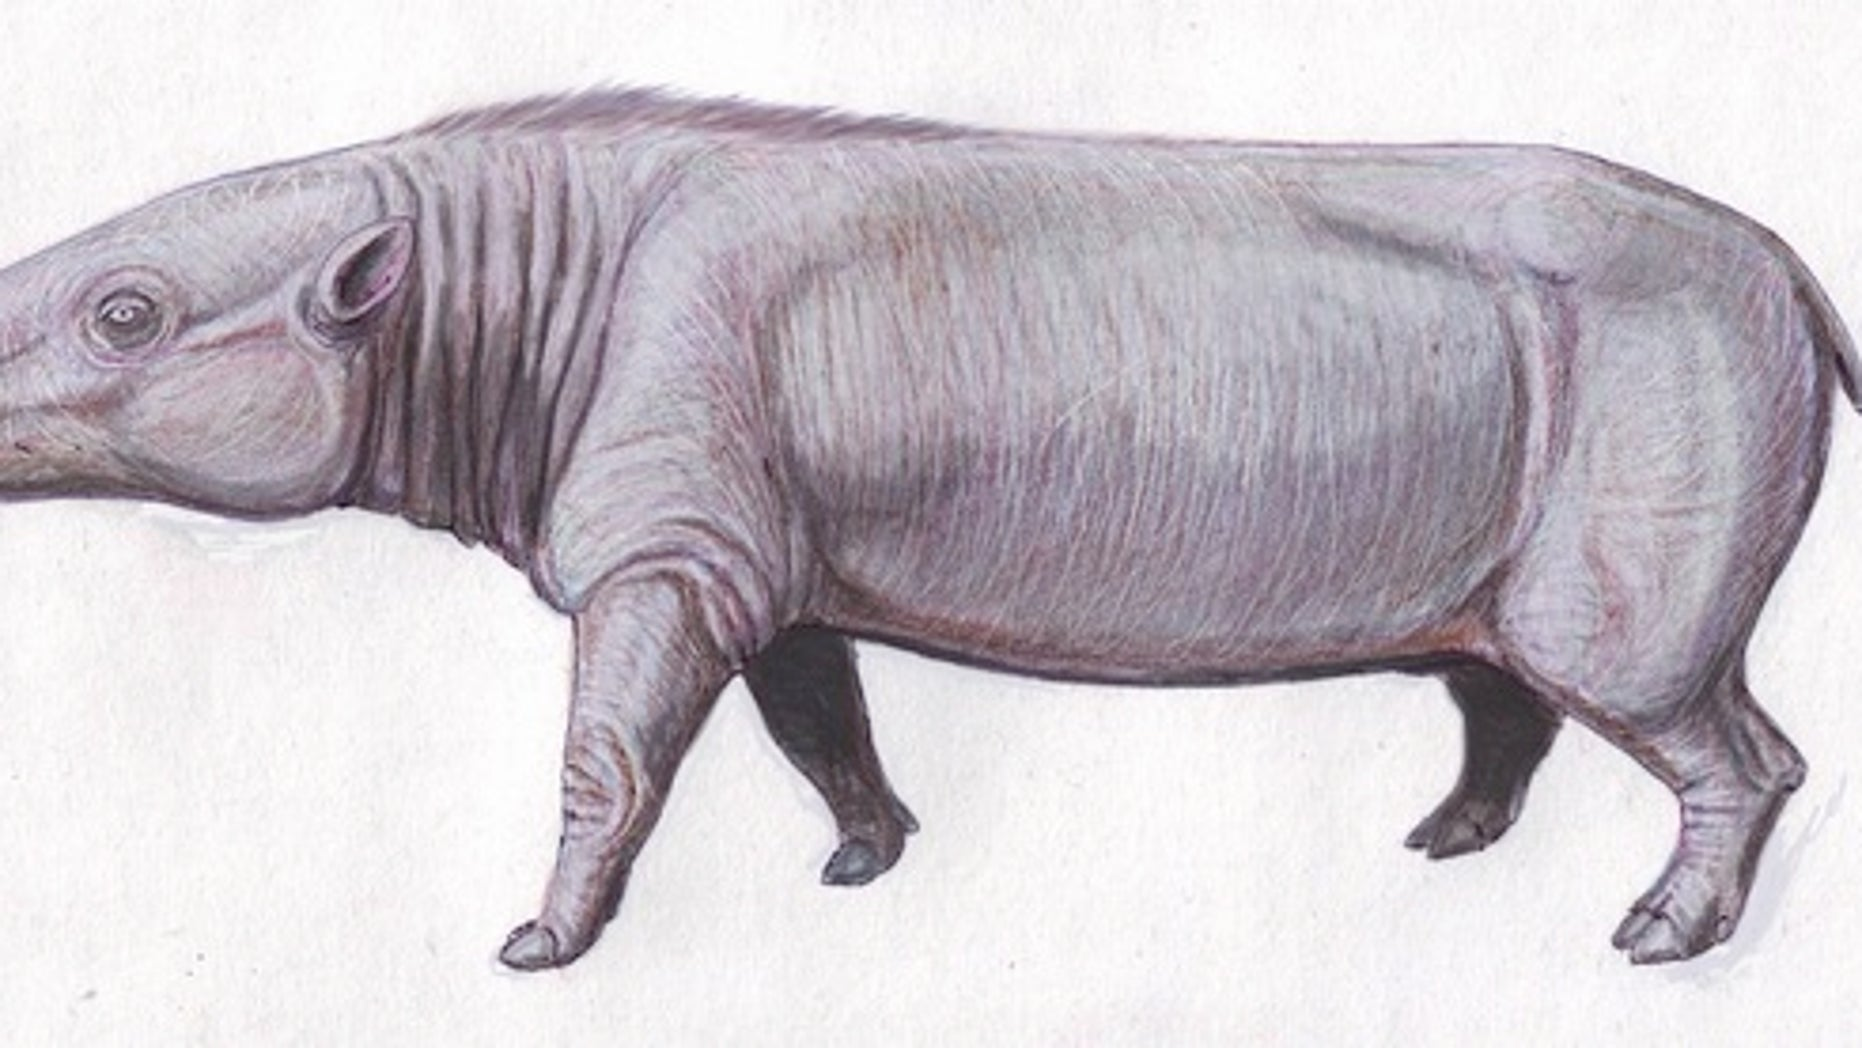 The anthrocothere, shown here, is believed to be a common ancestor to hippos.